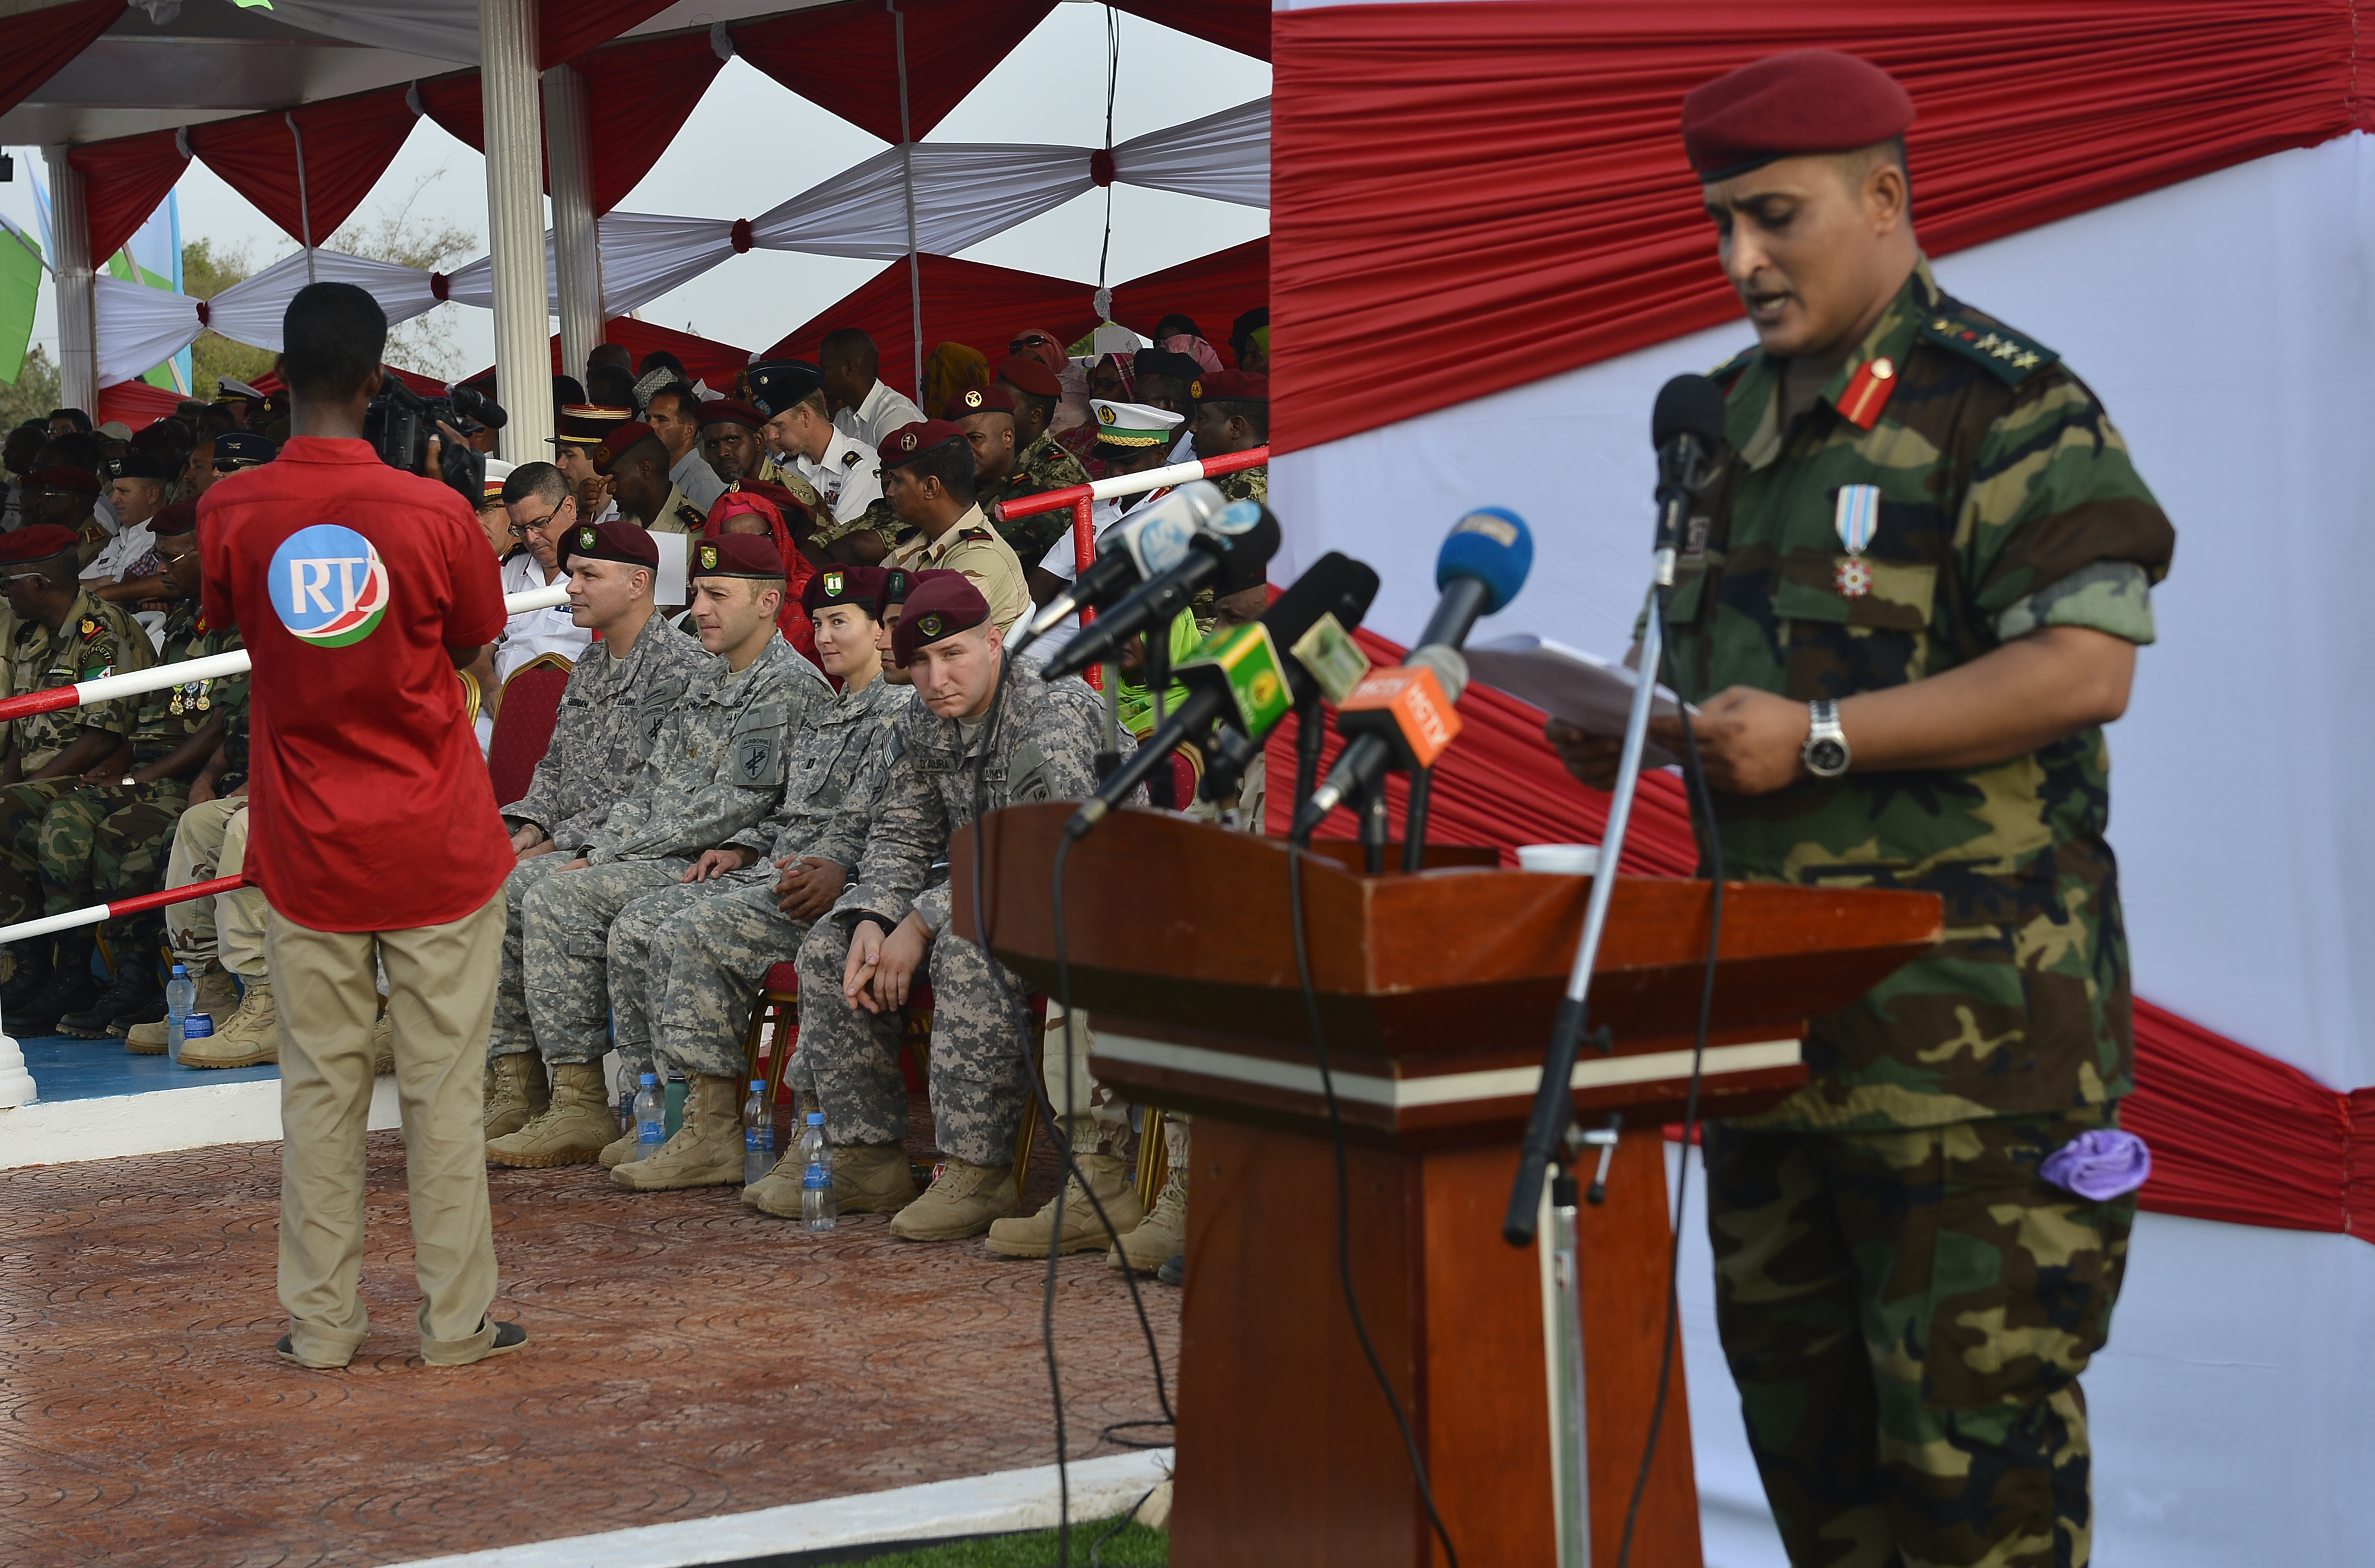 U.S. Army Soldiers assigned to Combined Joint Task Force-Horn of Africa, listen to a speaker during the Djiboutian Armed Forces' (FAD) 38th anniversary celebration June 6, 2015 at Camp Cheik Osman, Djibouti.  The FAD invited its partner nations to celebrate the creation of the FAD while observing the pride and professionalism of Djibouti's service members. (U.S. Air Force photo by Senior Airman Nesha Humes)